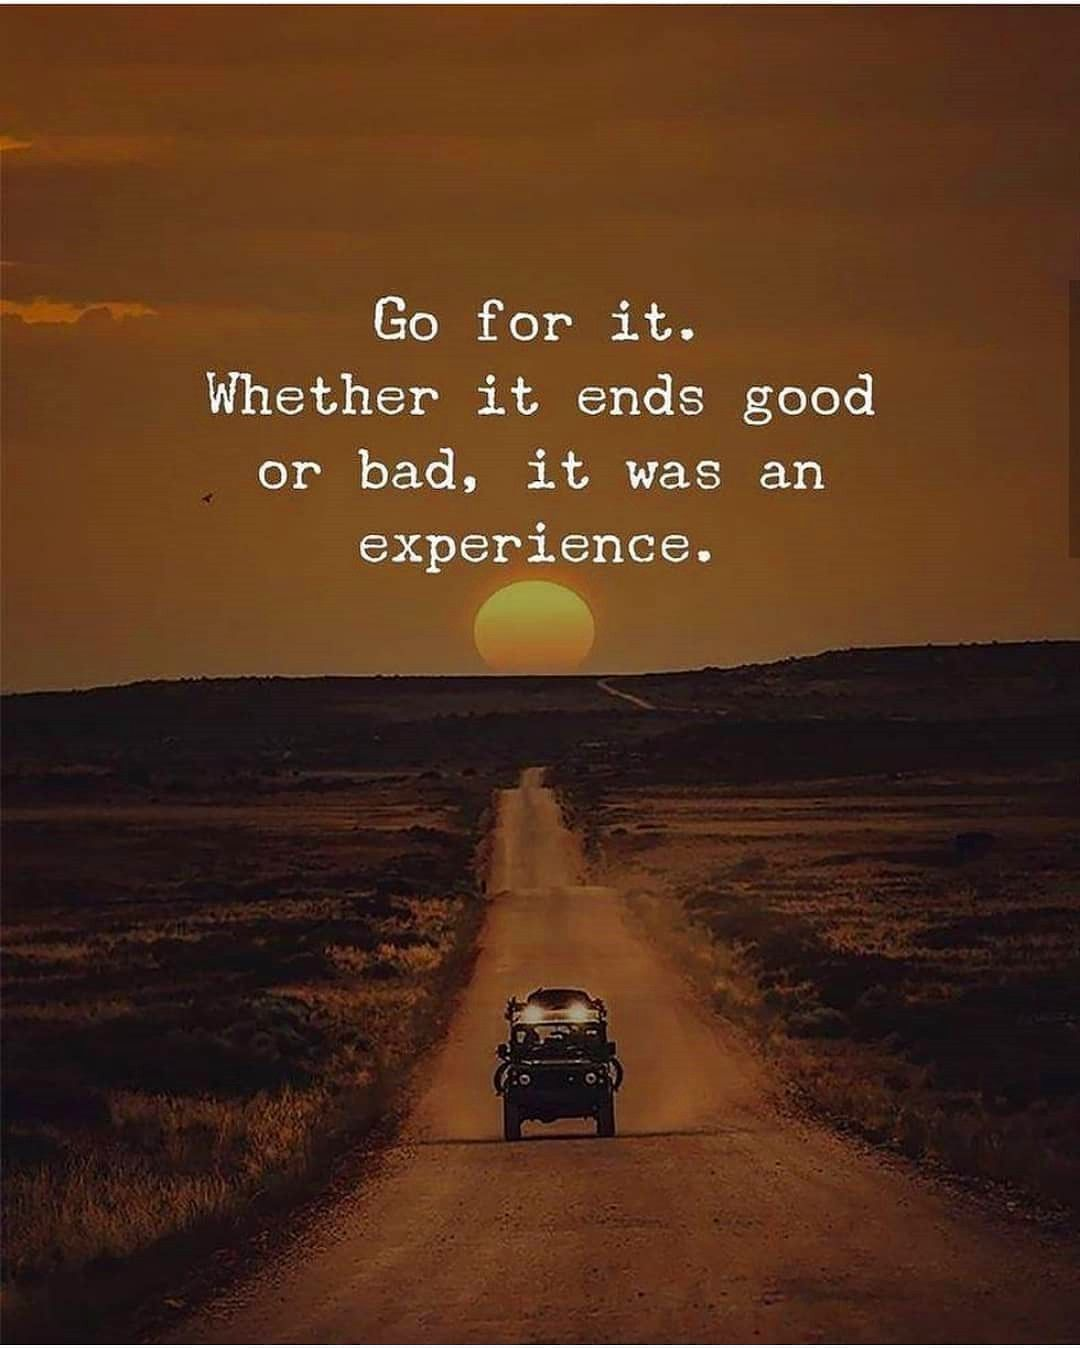 55 Short Life Quotes Which Will Totally Brighten Up Your Day Life Is Too Short Quotes Inspiring Quotes About Life Life Quotes Tumblr